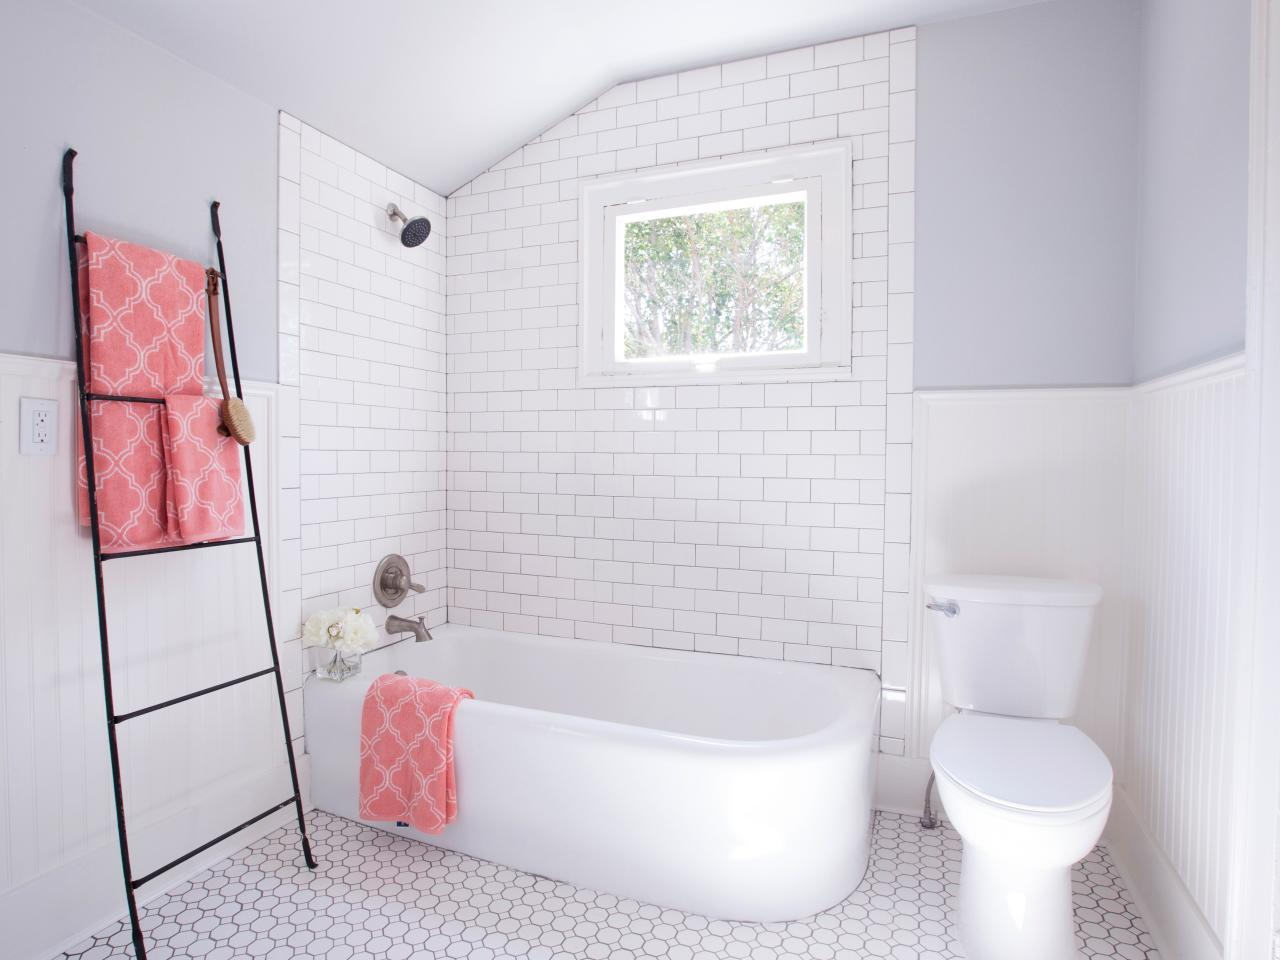 Tips to make the most of your tiles